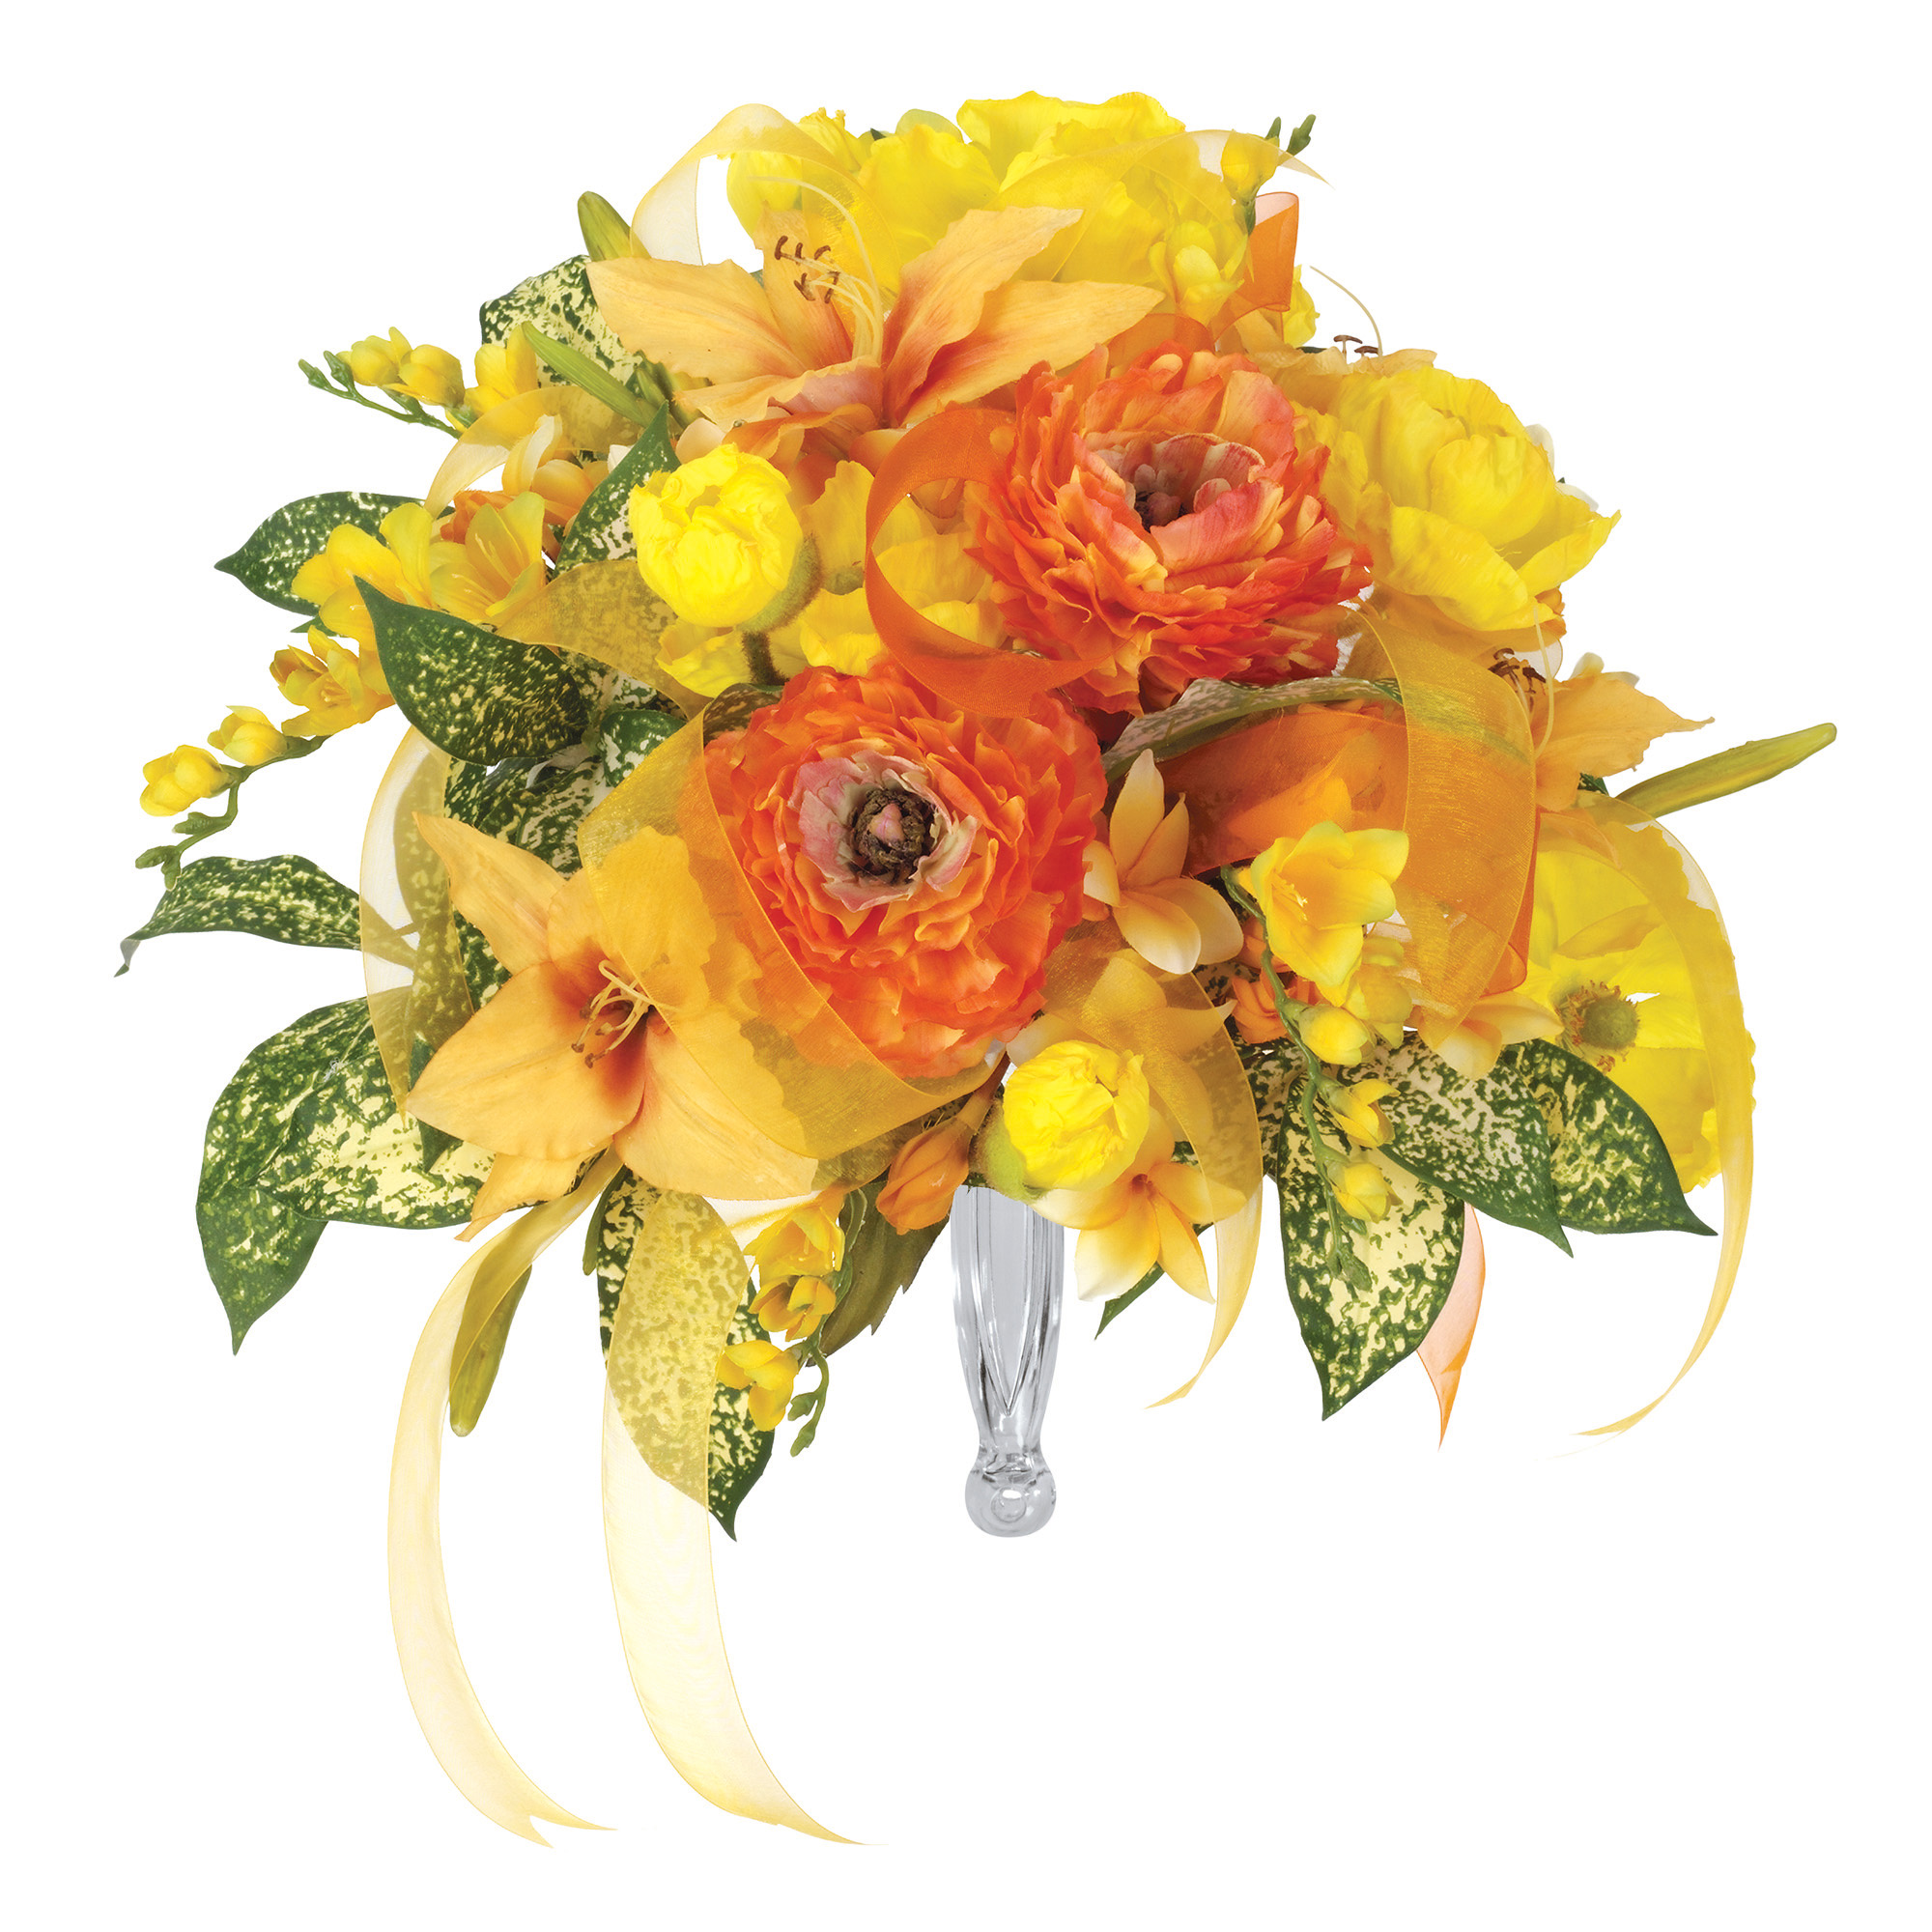 Gala Bouquet Holder For Fresh Flowers - Flowers Healthy